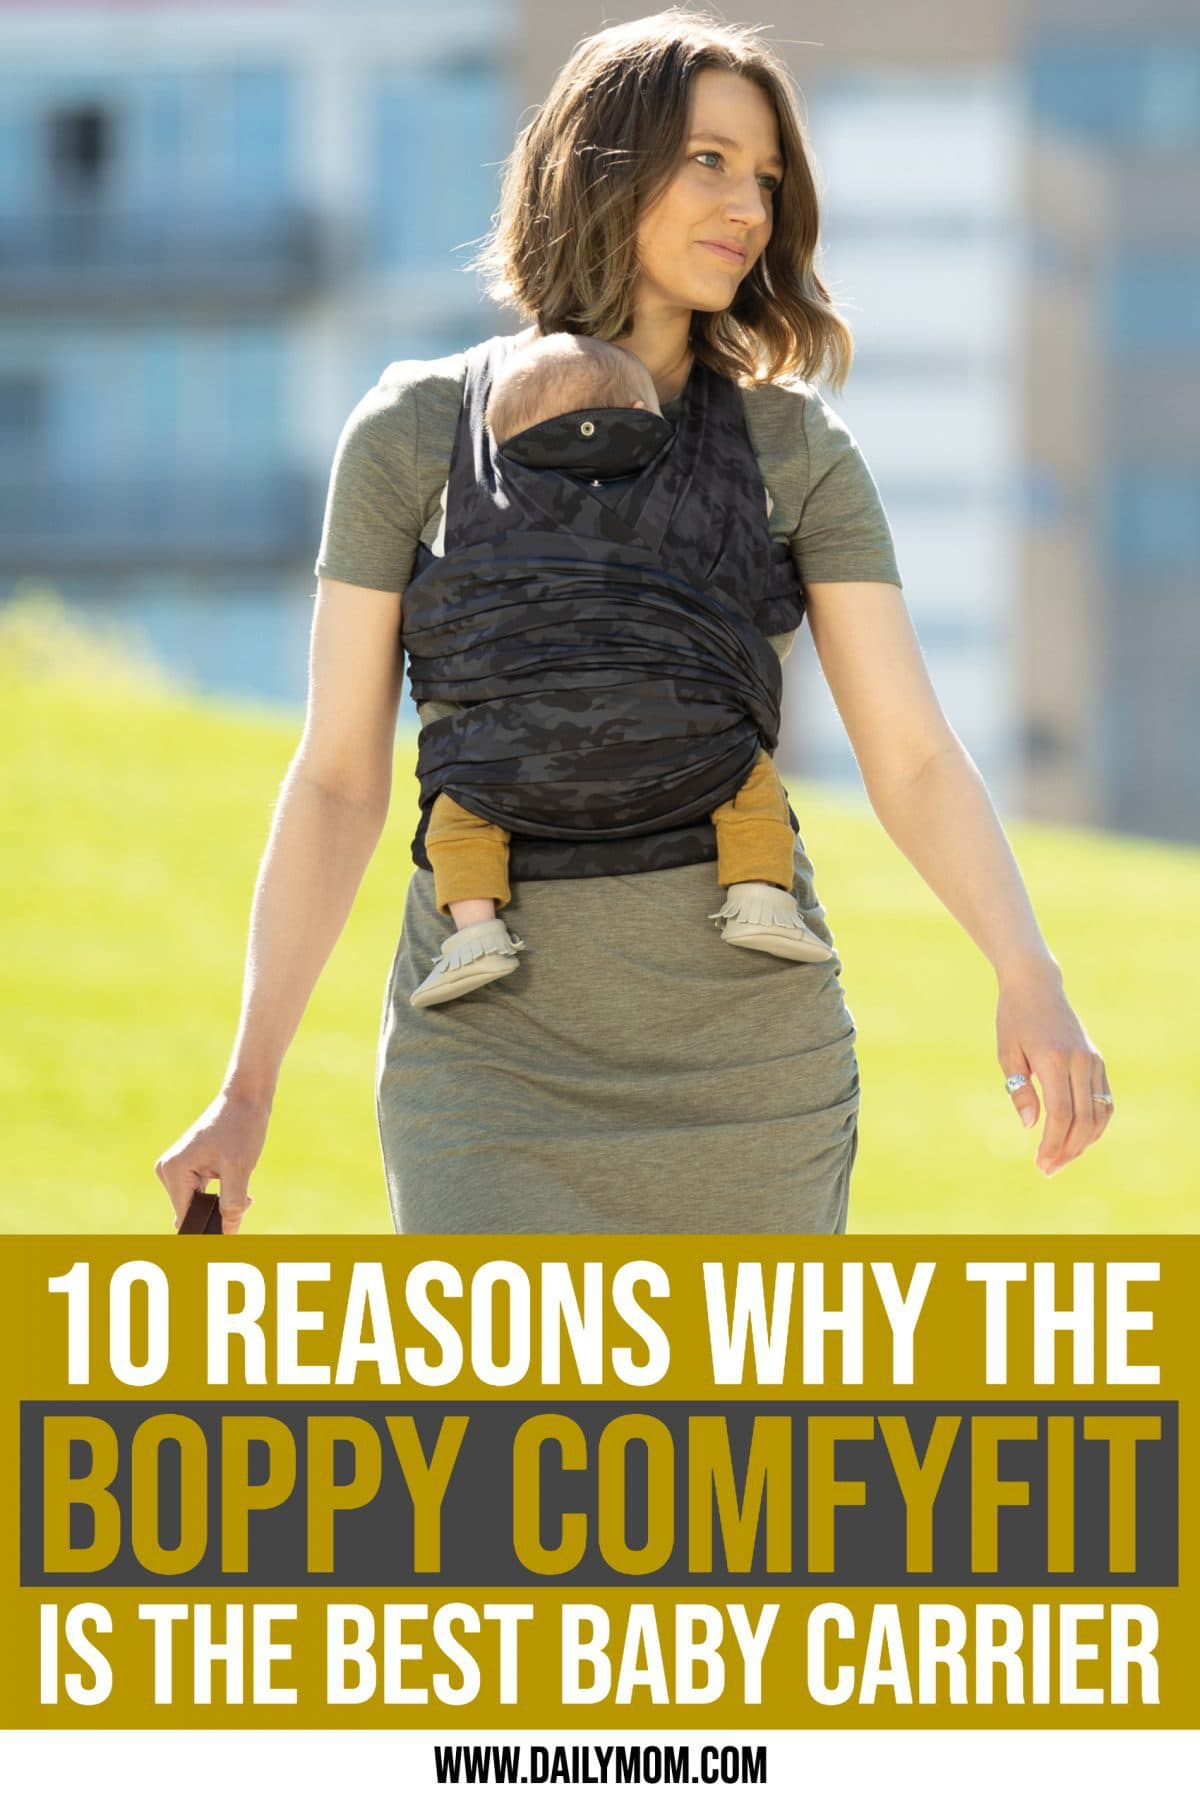 10 Reasons Why The Boppy Fit Is The Best Baby Carrier